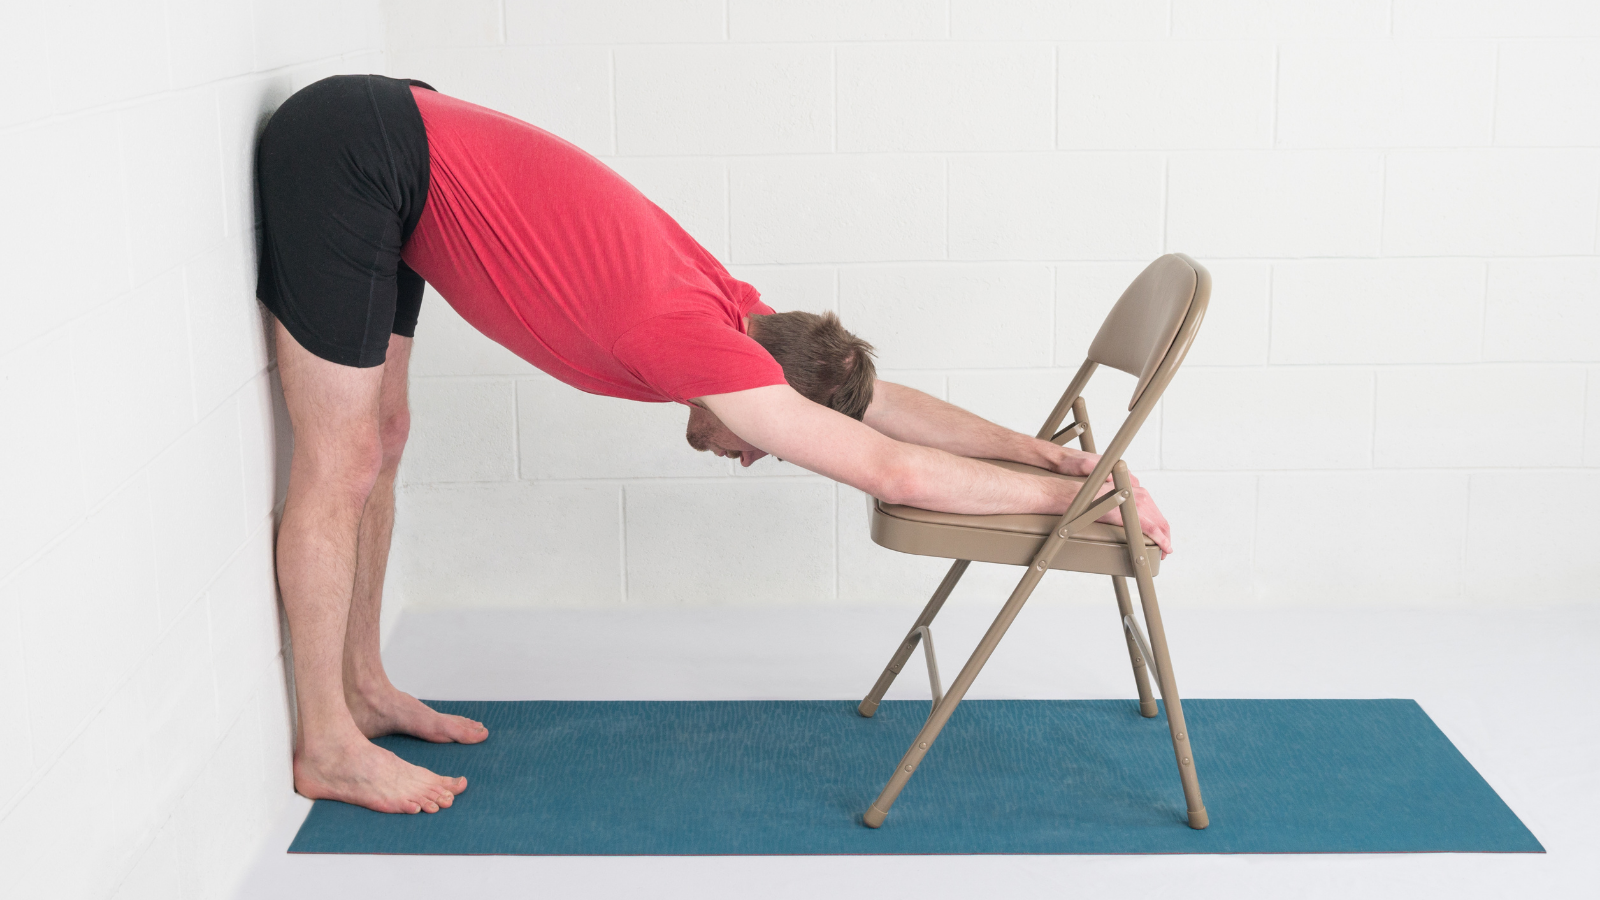 Man practicing Uttanasana (Standing Forward Bend Pose) variation with chair at the wall